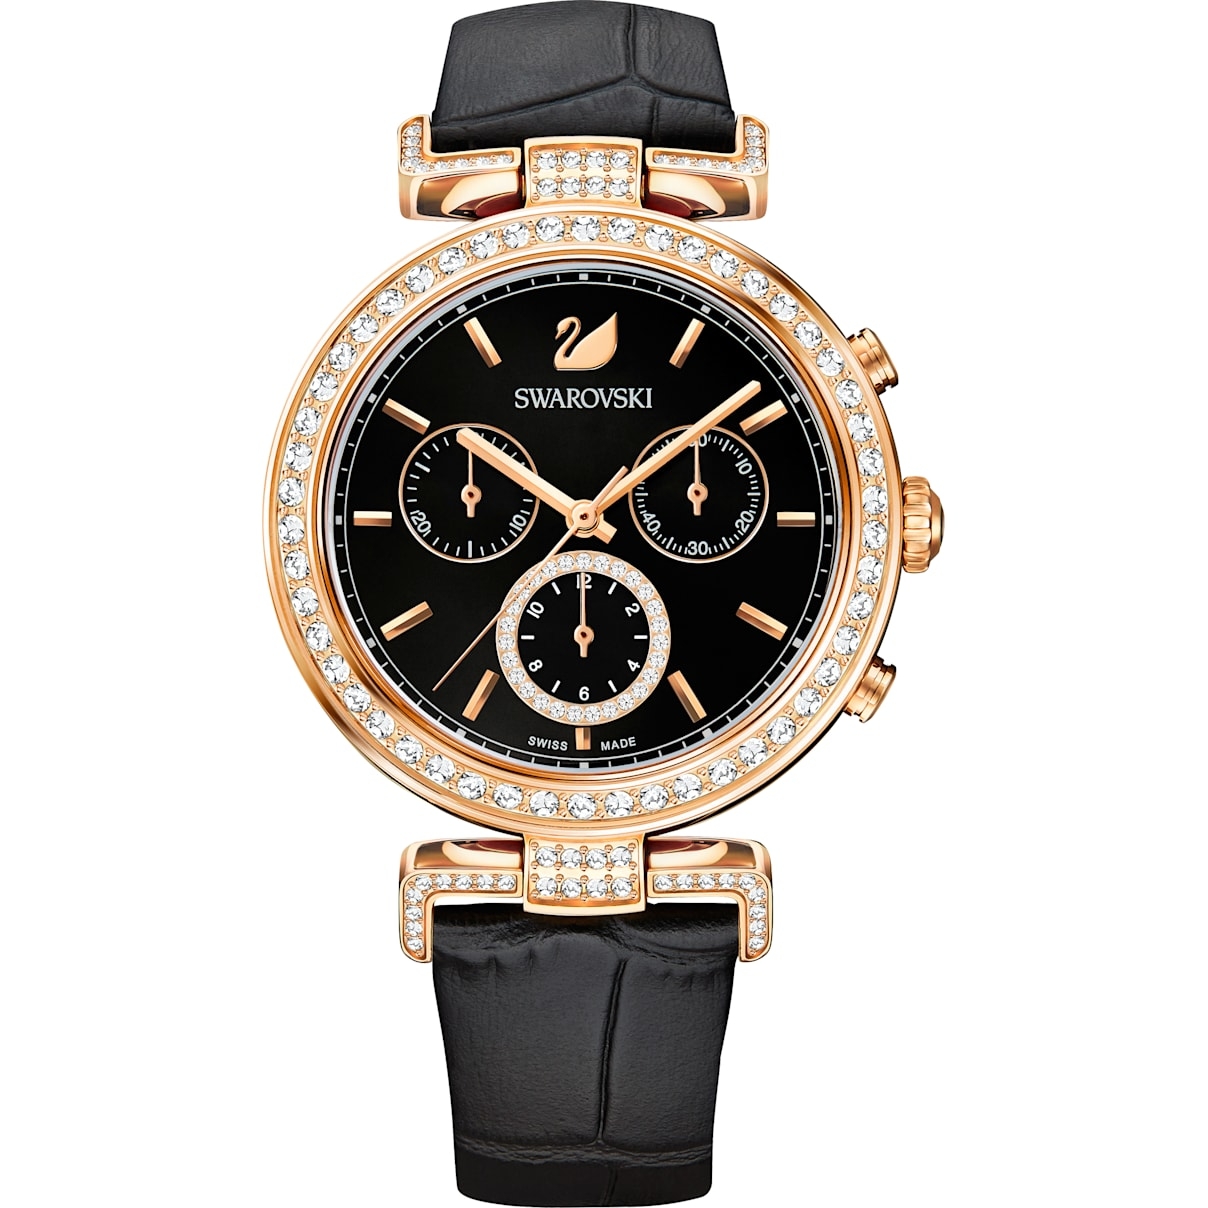 Swarovski Era Journey Watch, Leather strap, Black, Rose-gold tone PVD